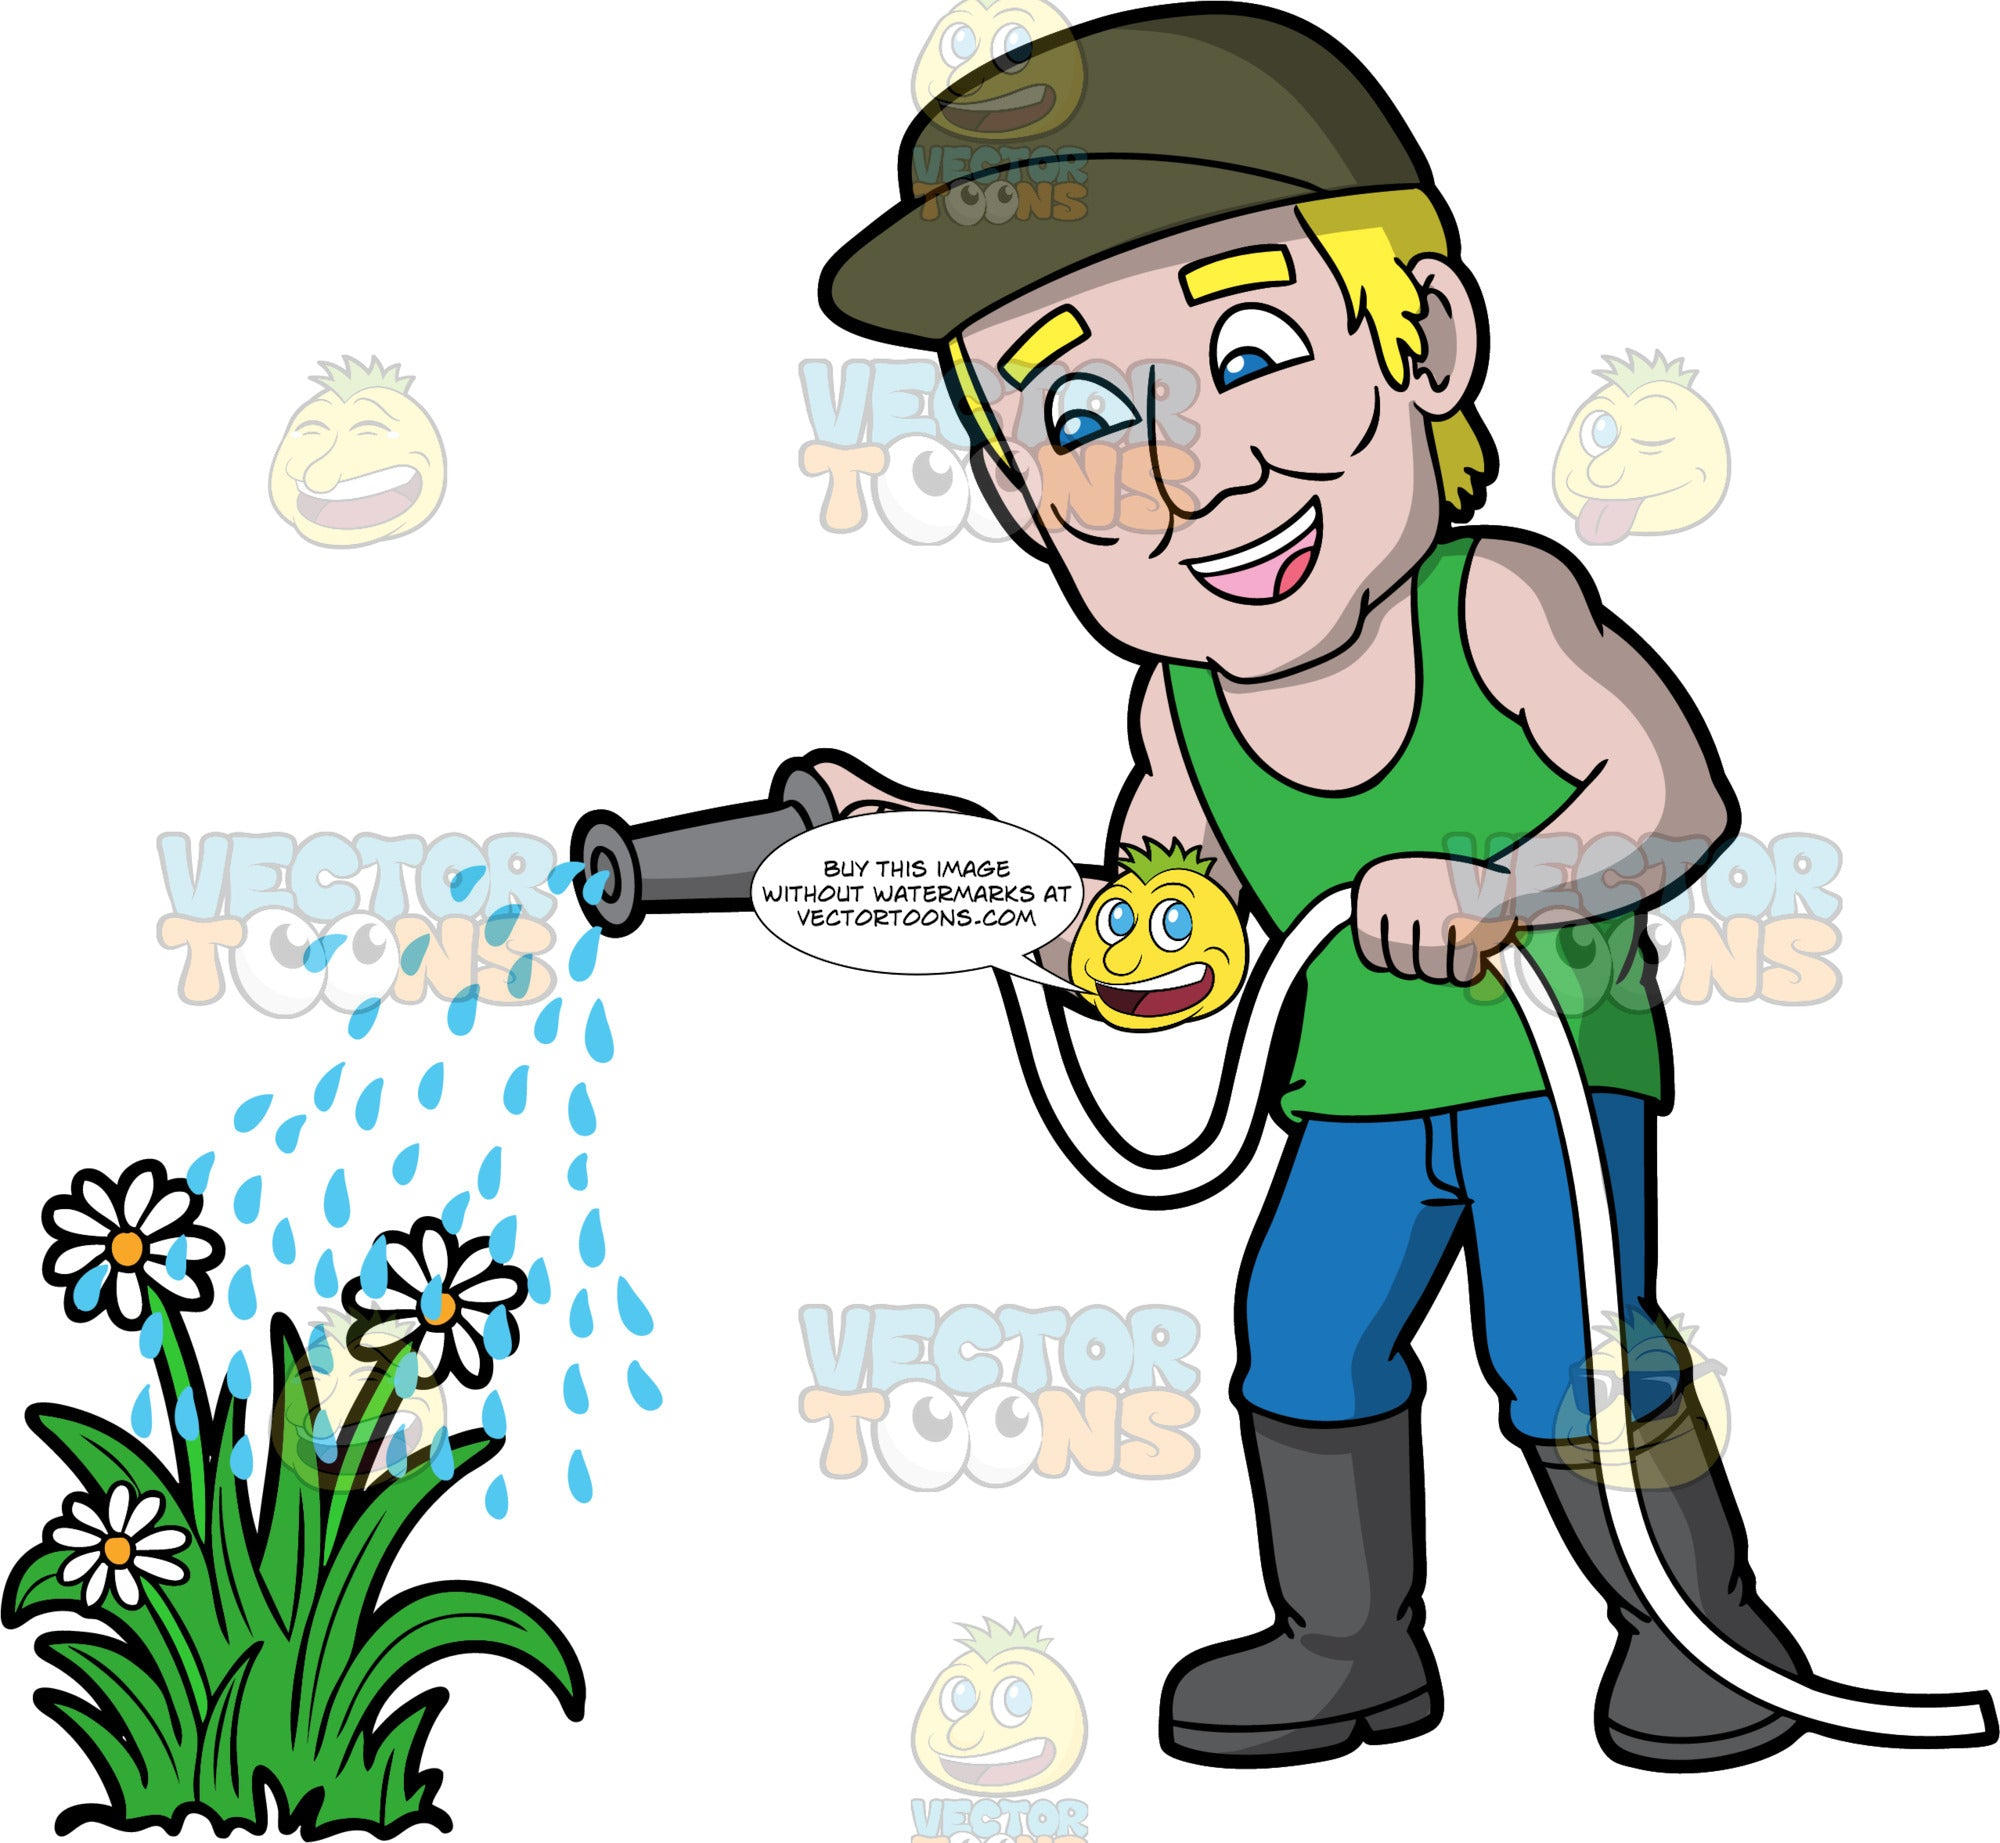 A man watering flowers. A man with blonde hair and blue eyes, wearing blue pants, a green tank top, gray rubber boots, and a baseball cap, using a hose to water some white flowers